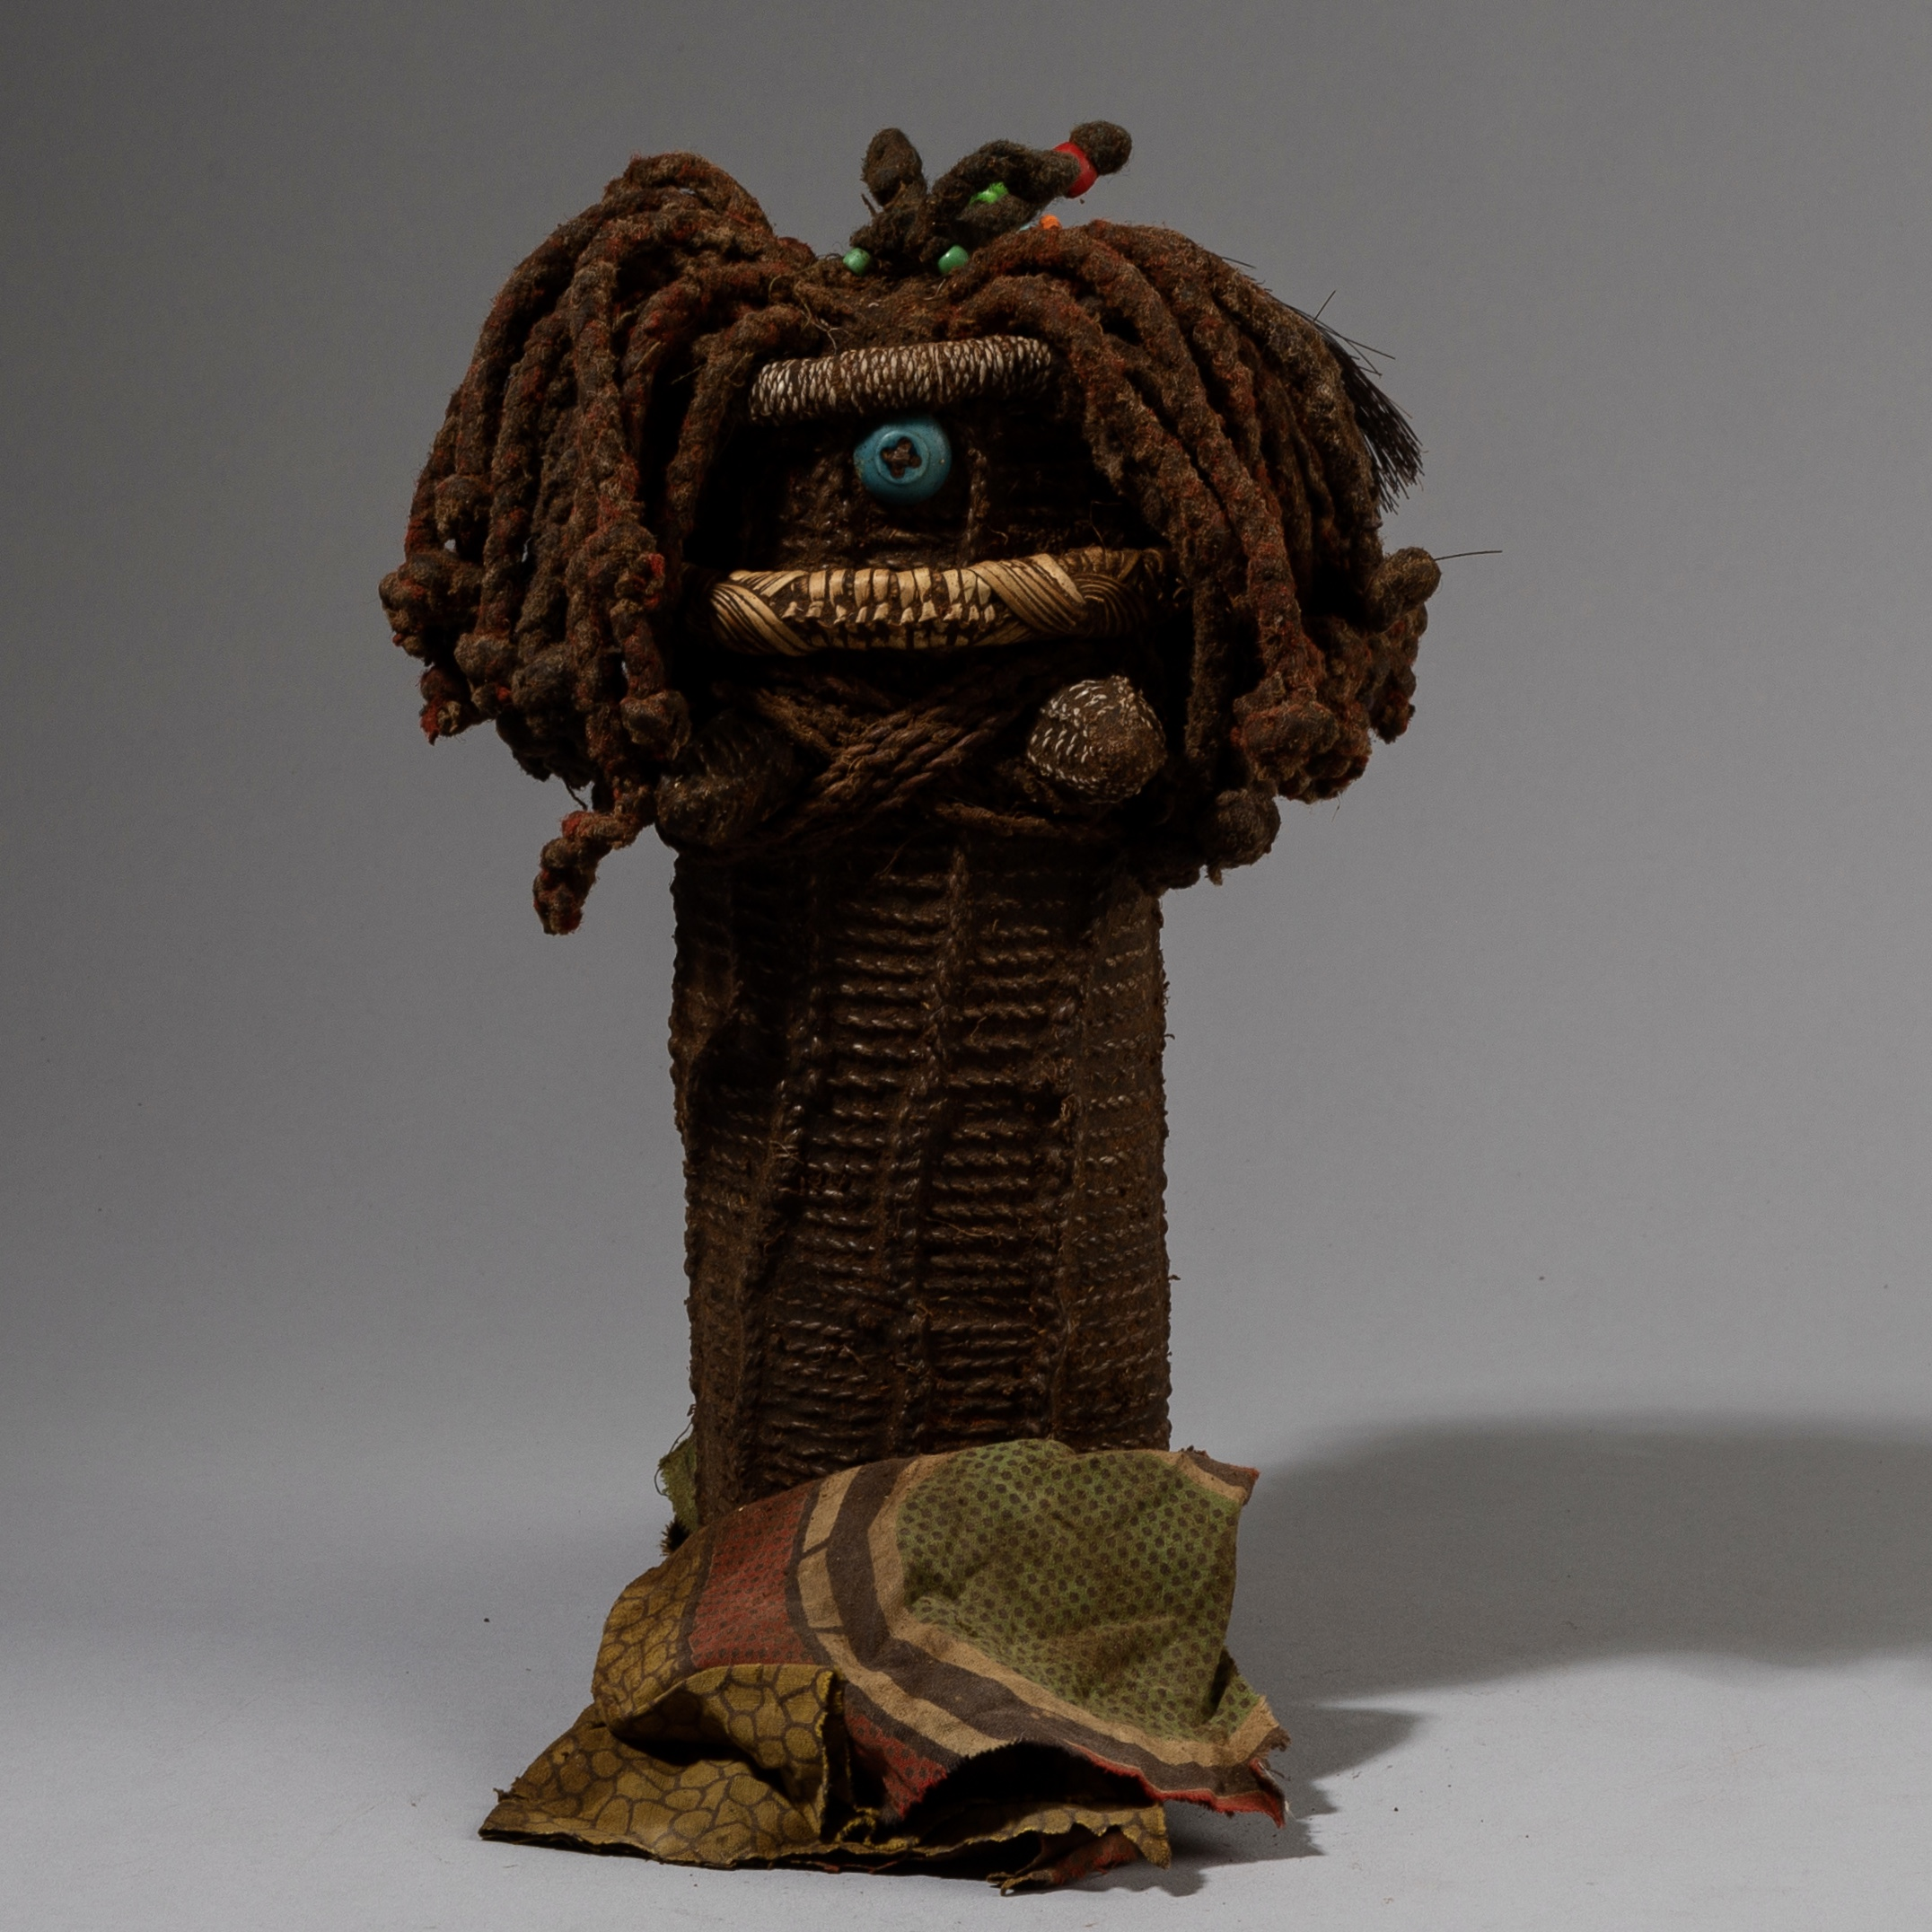 AN EXCEPTIONAL MWILA DOLL WITH LOVELY DETAILS, NAMIBIA ( No 3736 )